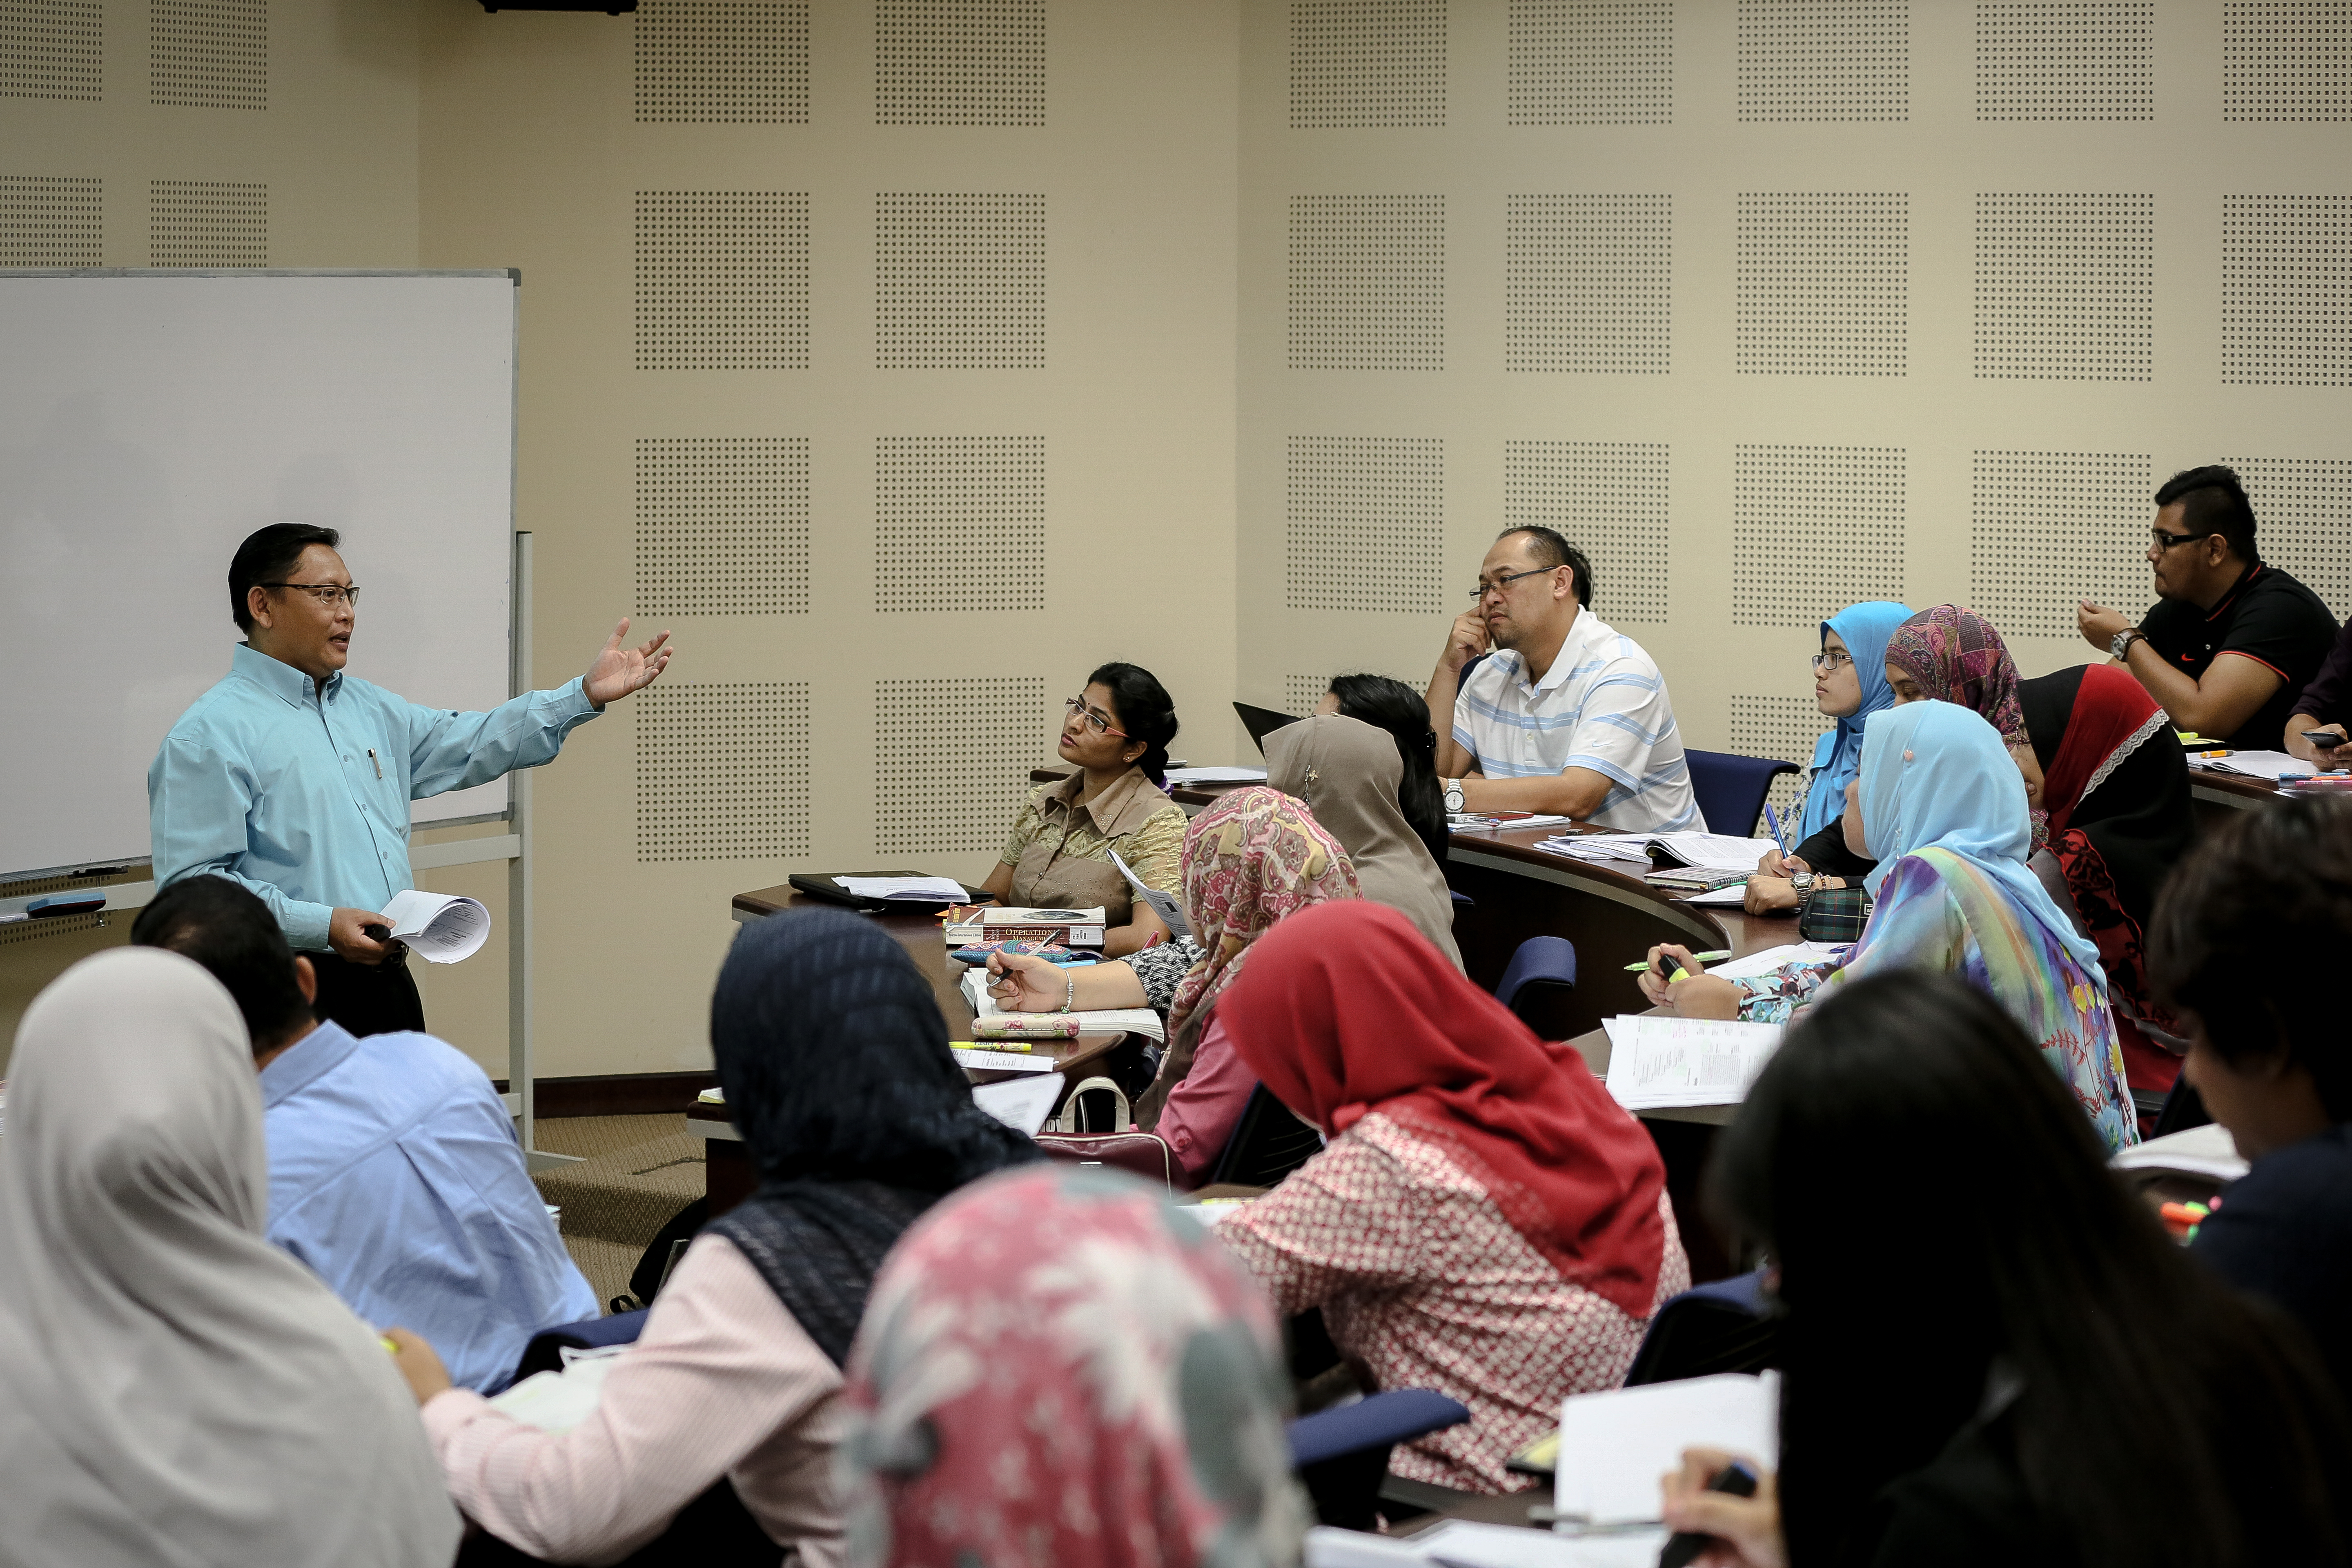 UKM Graduate School of Business – Rising the bar of management education